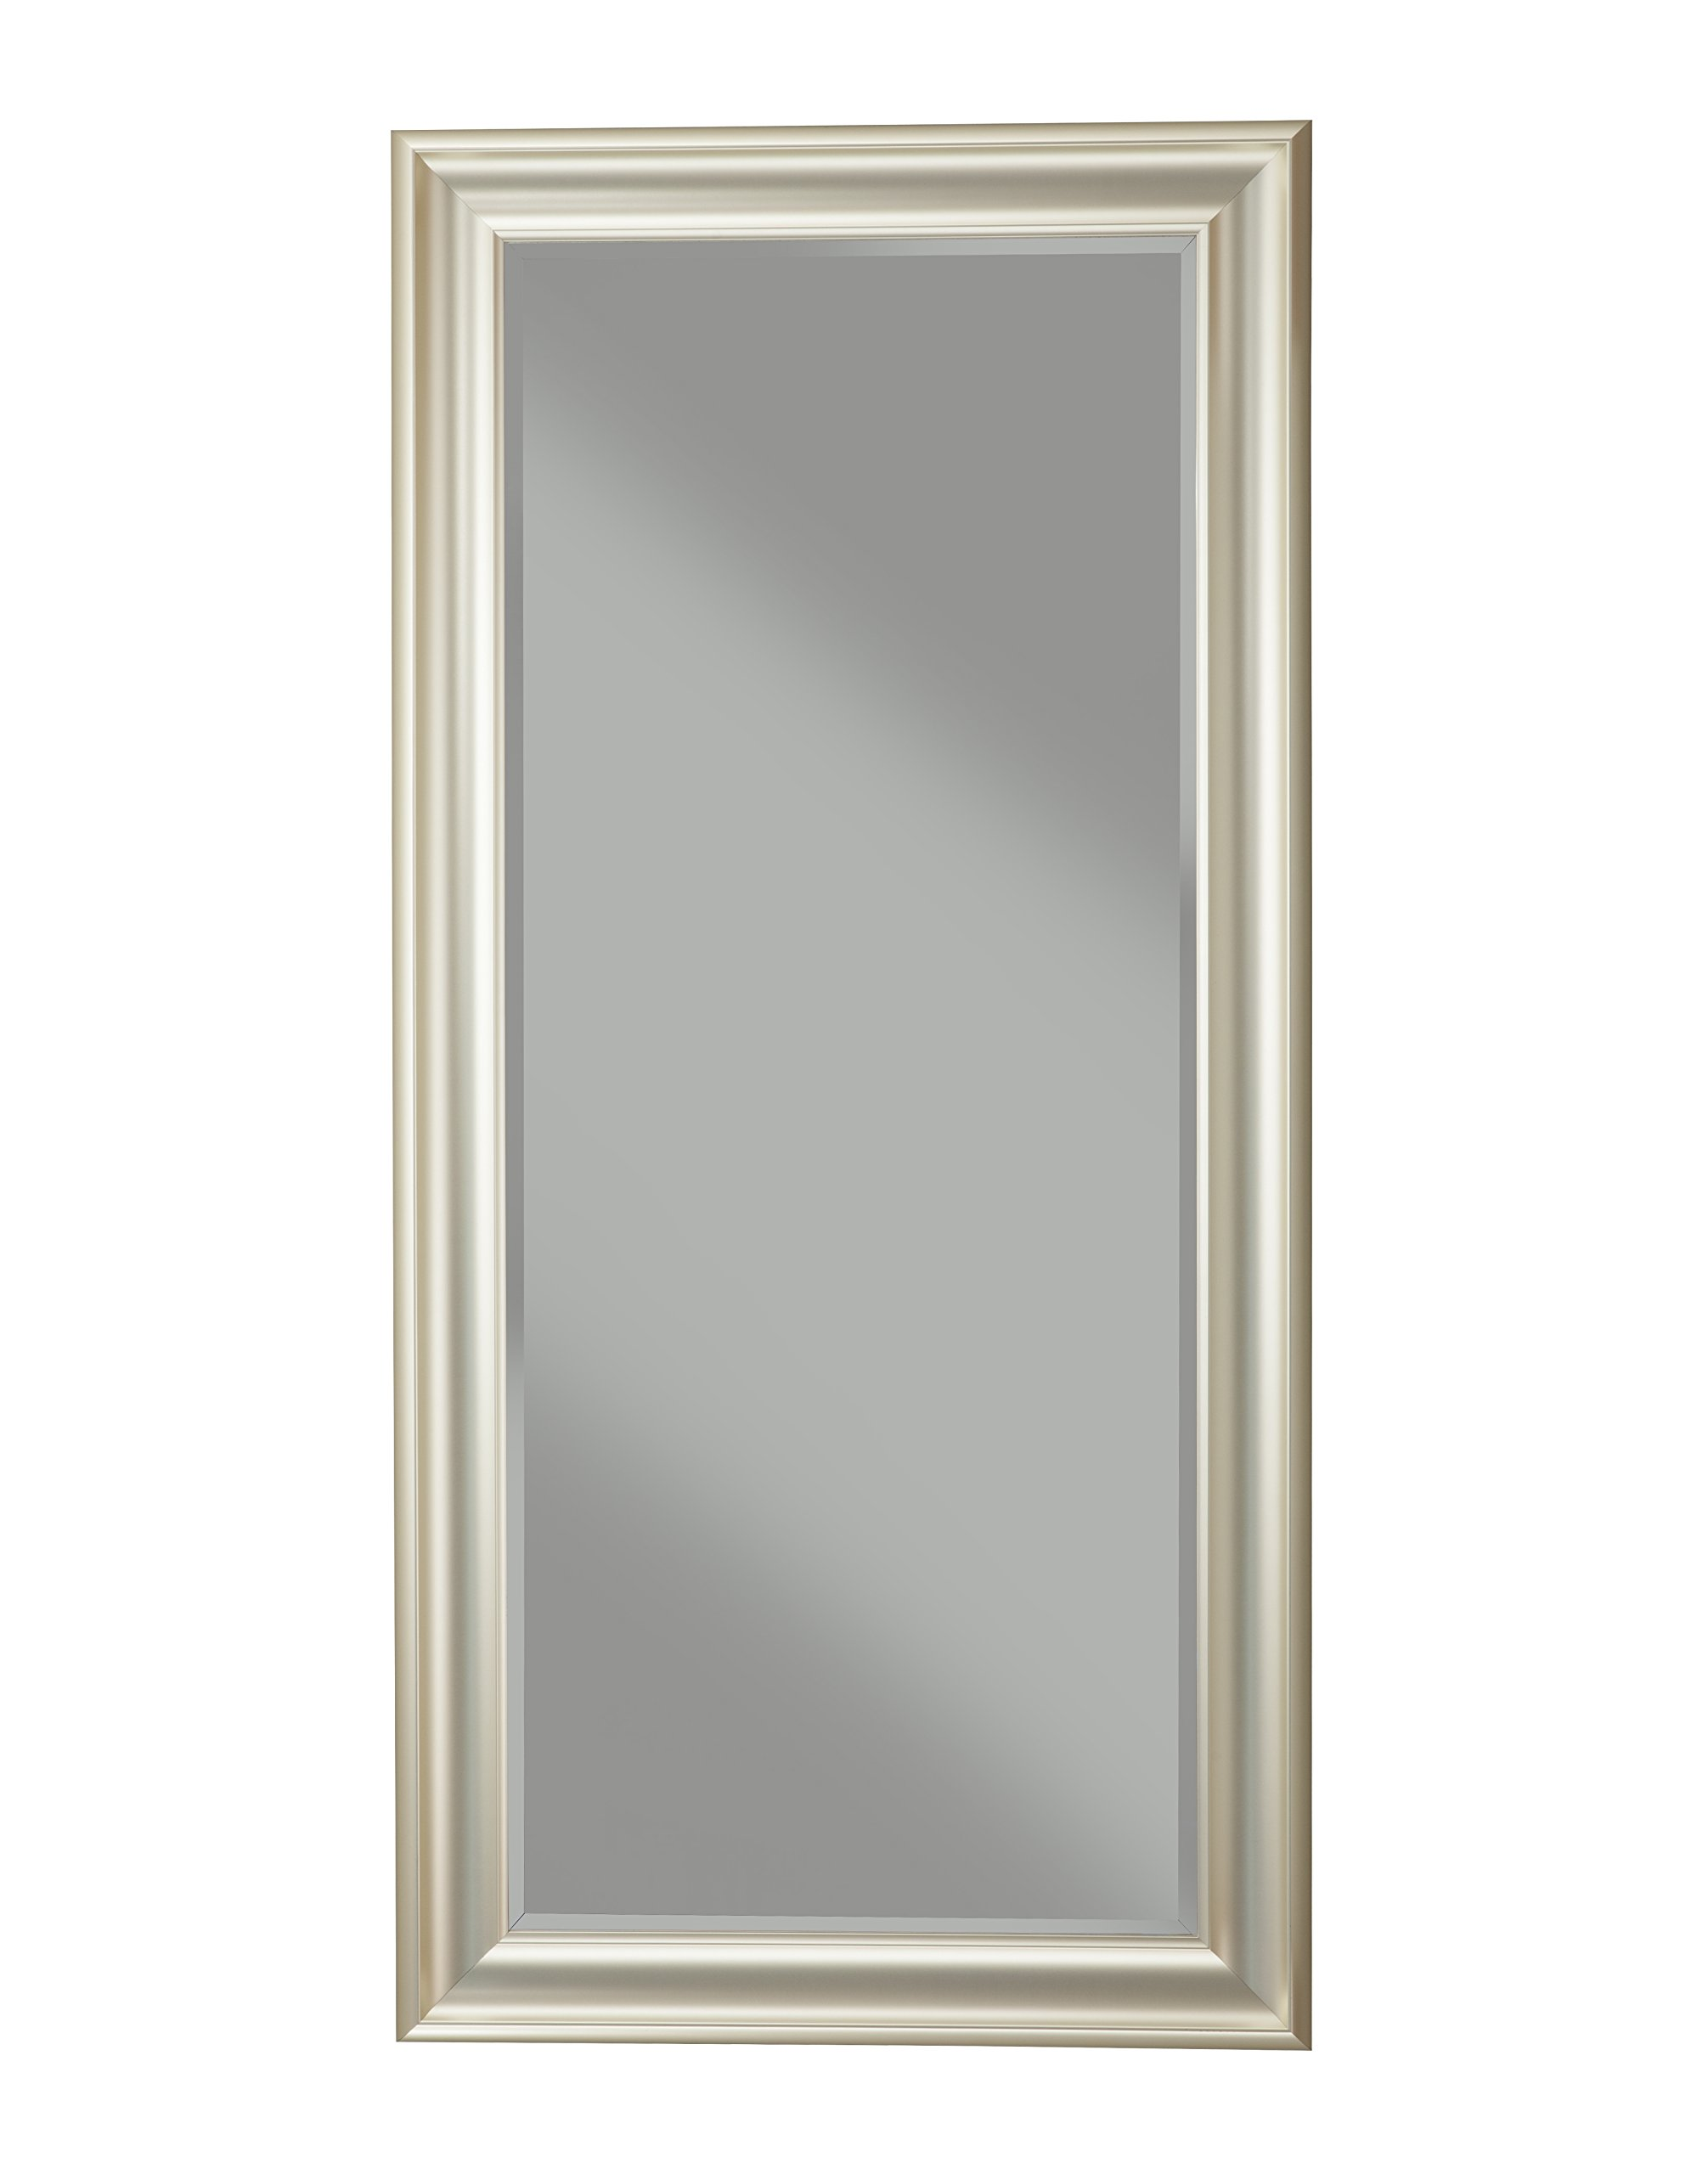 Sandberg Furniture, Full Length Leaner Mirror, Brushed Bronze